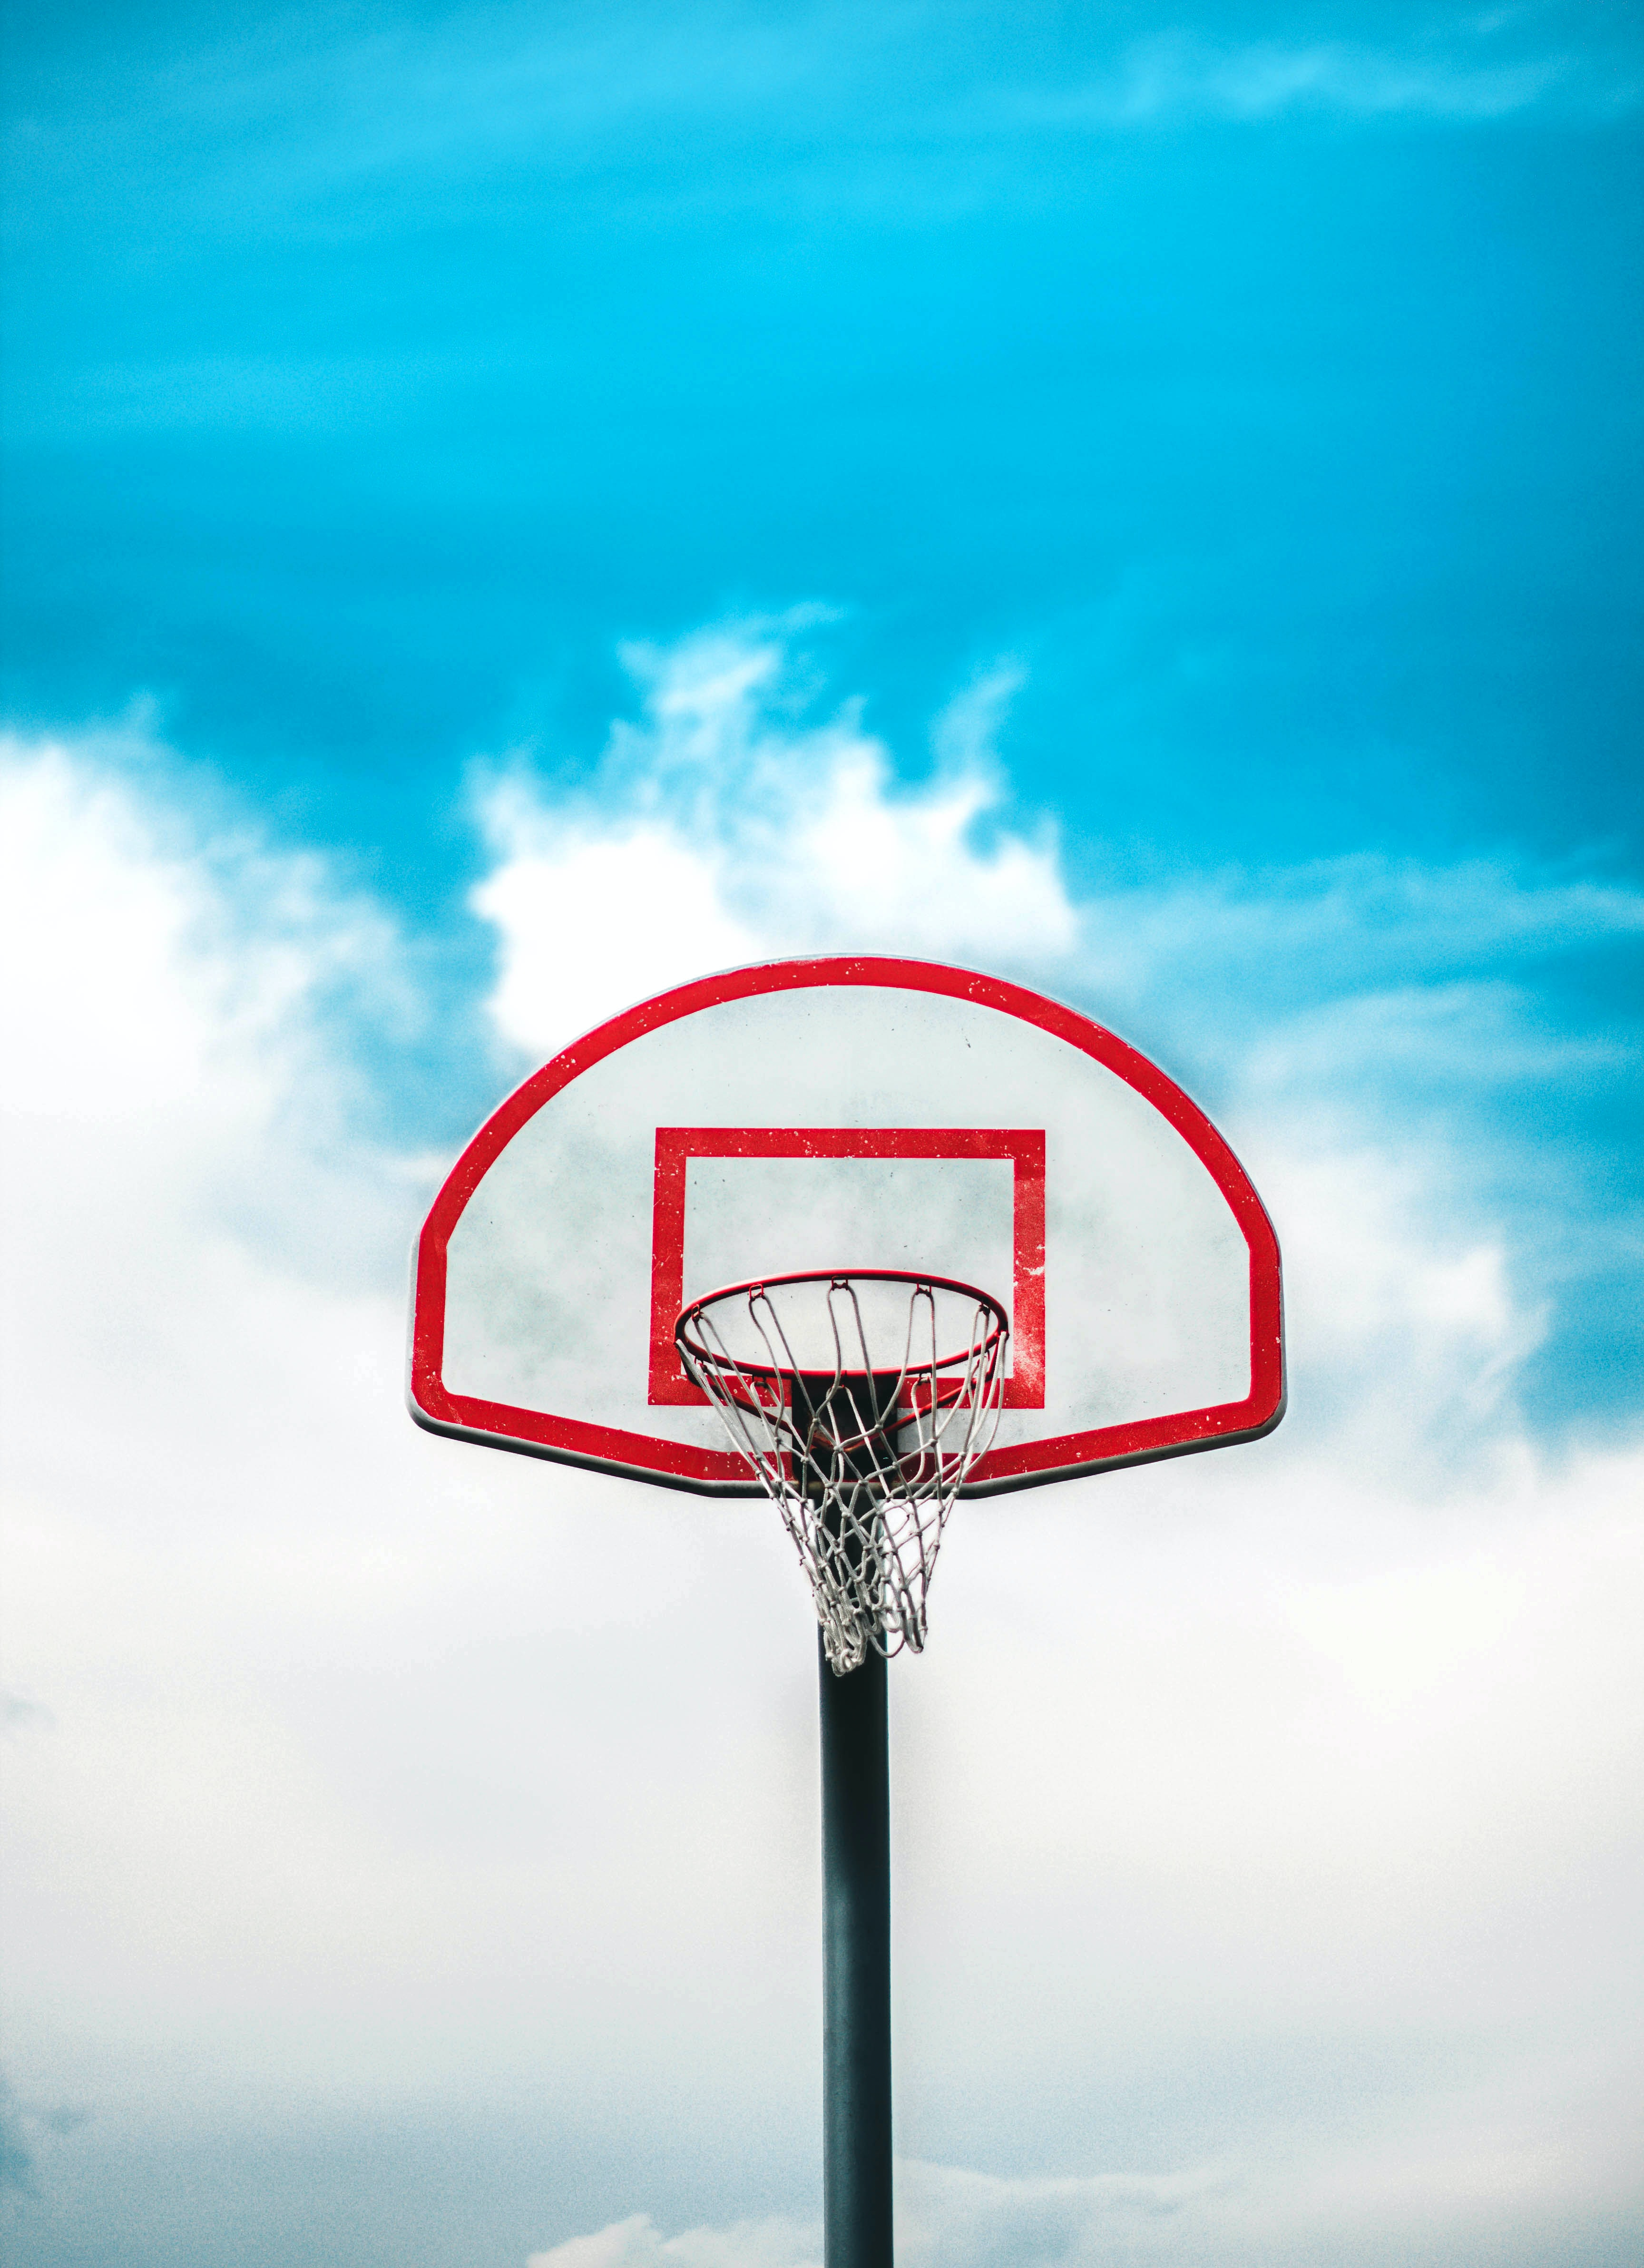 red and black basketball hoop under cloudy sky